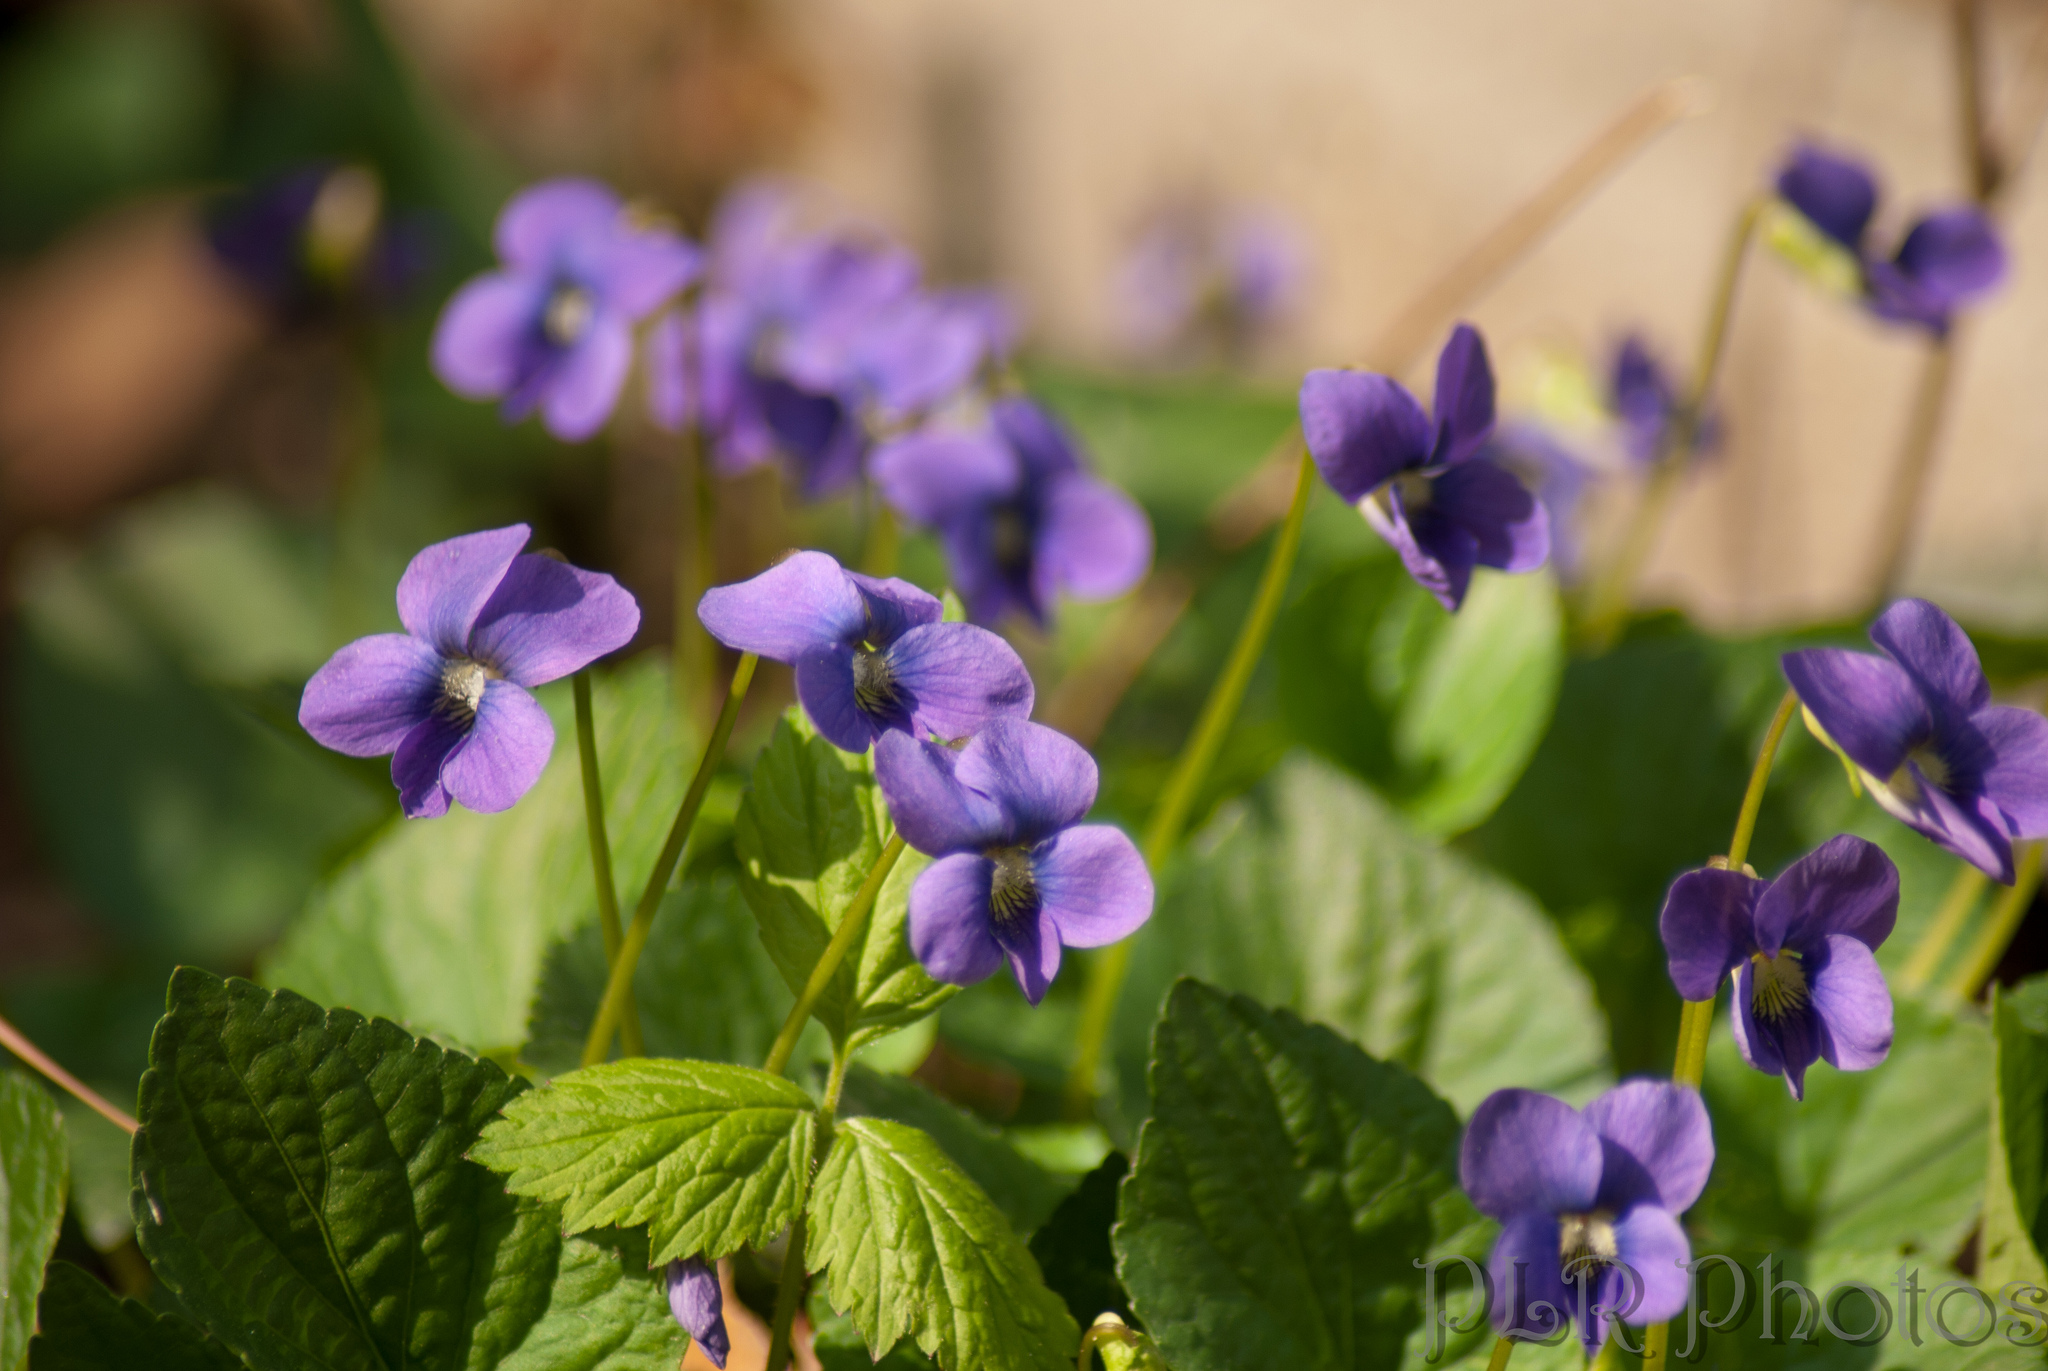 The color change violets project works because violets are natural pH indicators.  (Robert & Pat Rogers)